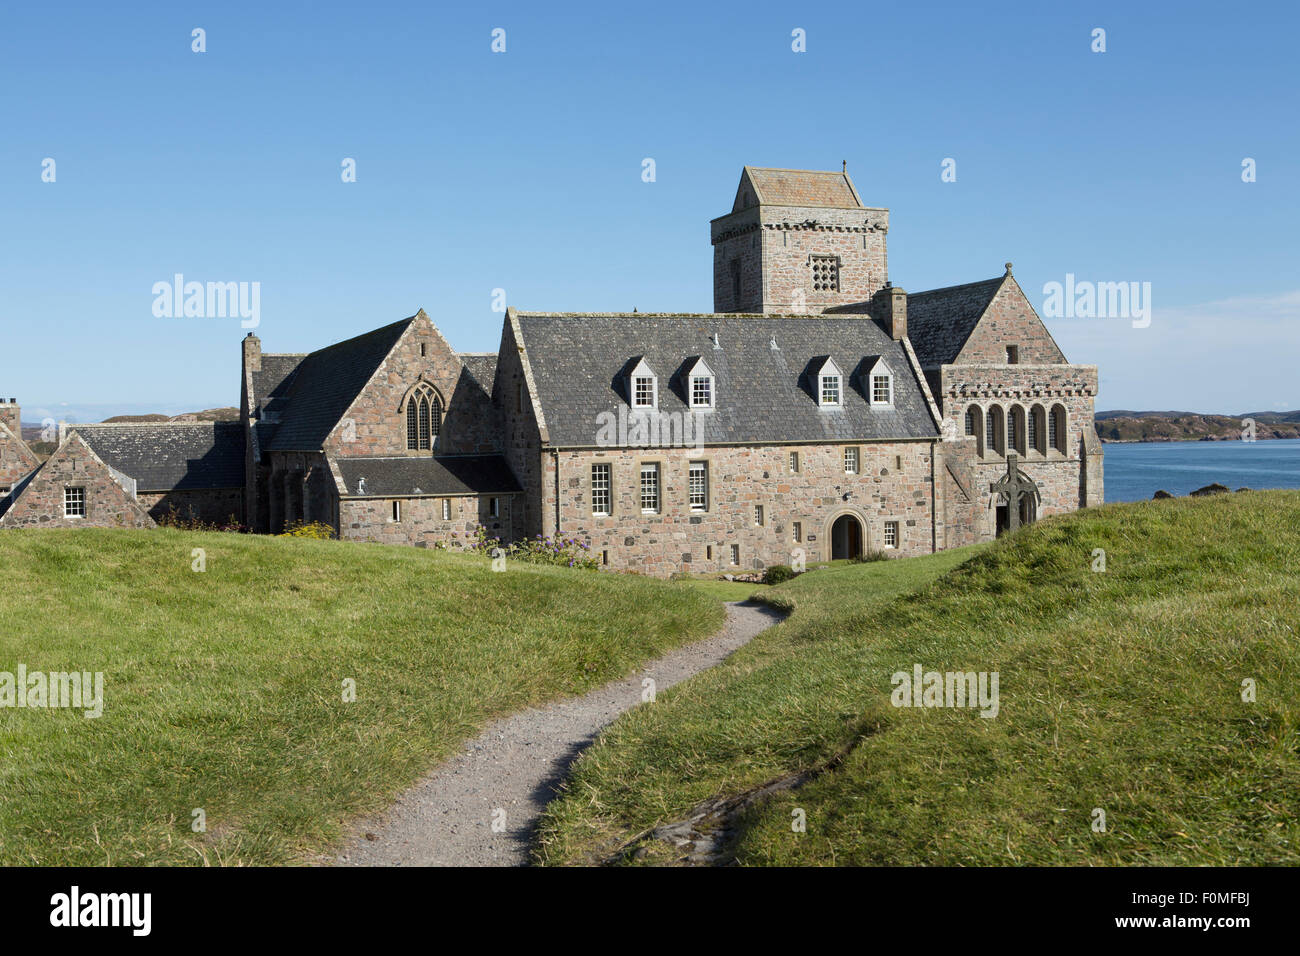 Iona Abbey, one of the oldest sites of Christian worship in Europe and the burial place of Macbeth, founded by Columba - Stock Image